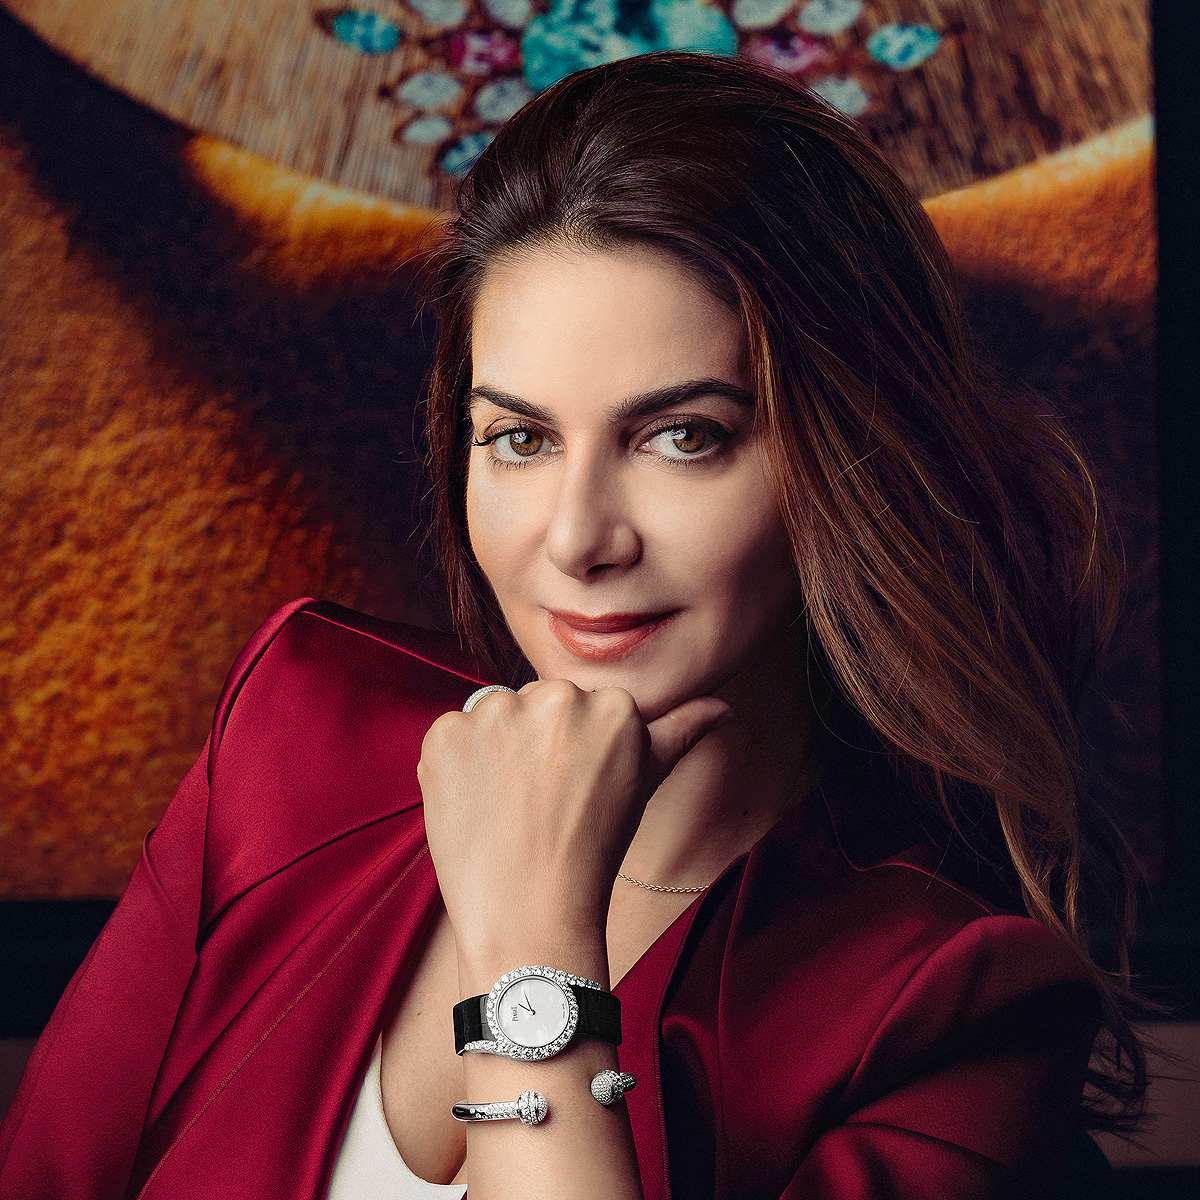 Chabi Nouri, CEO of Piaget